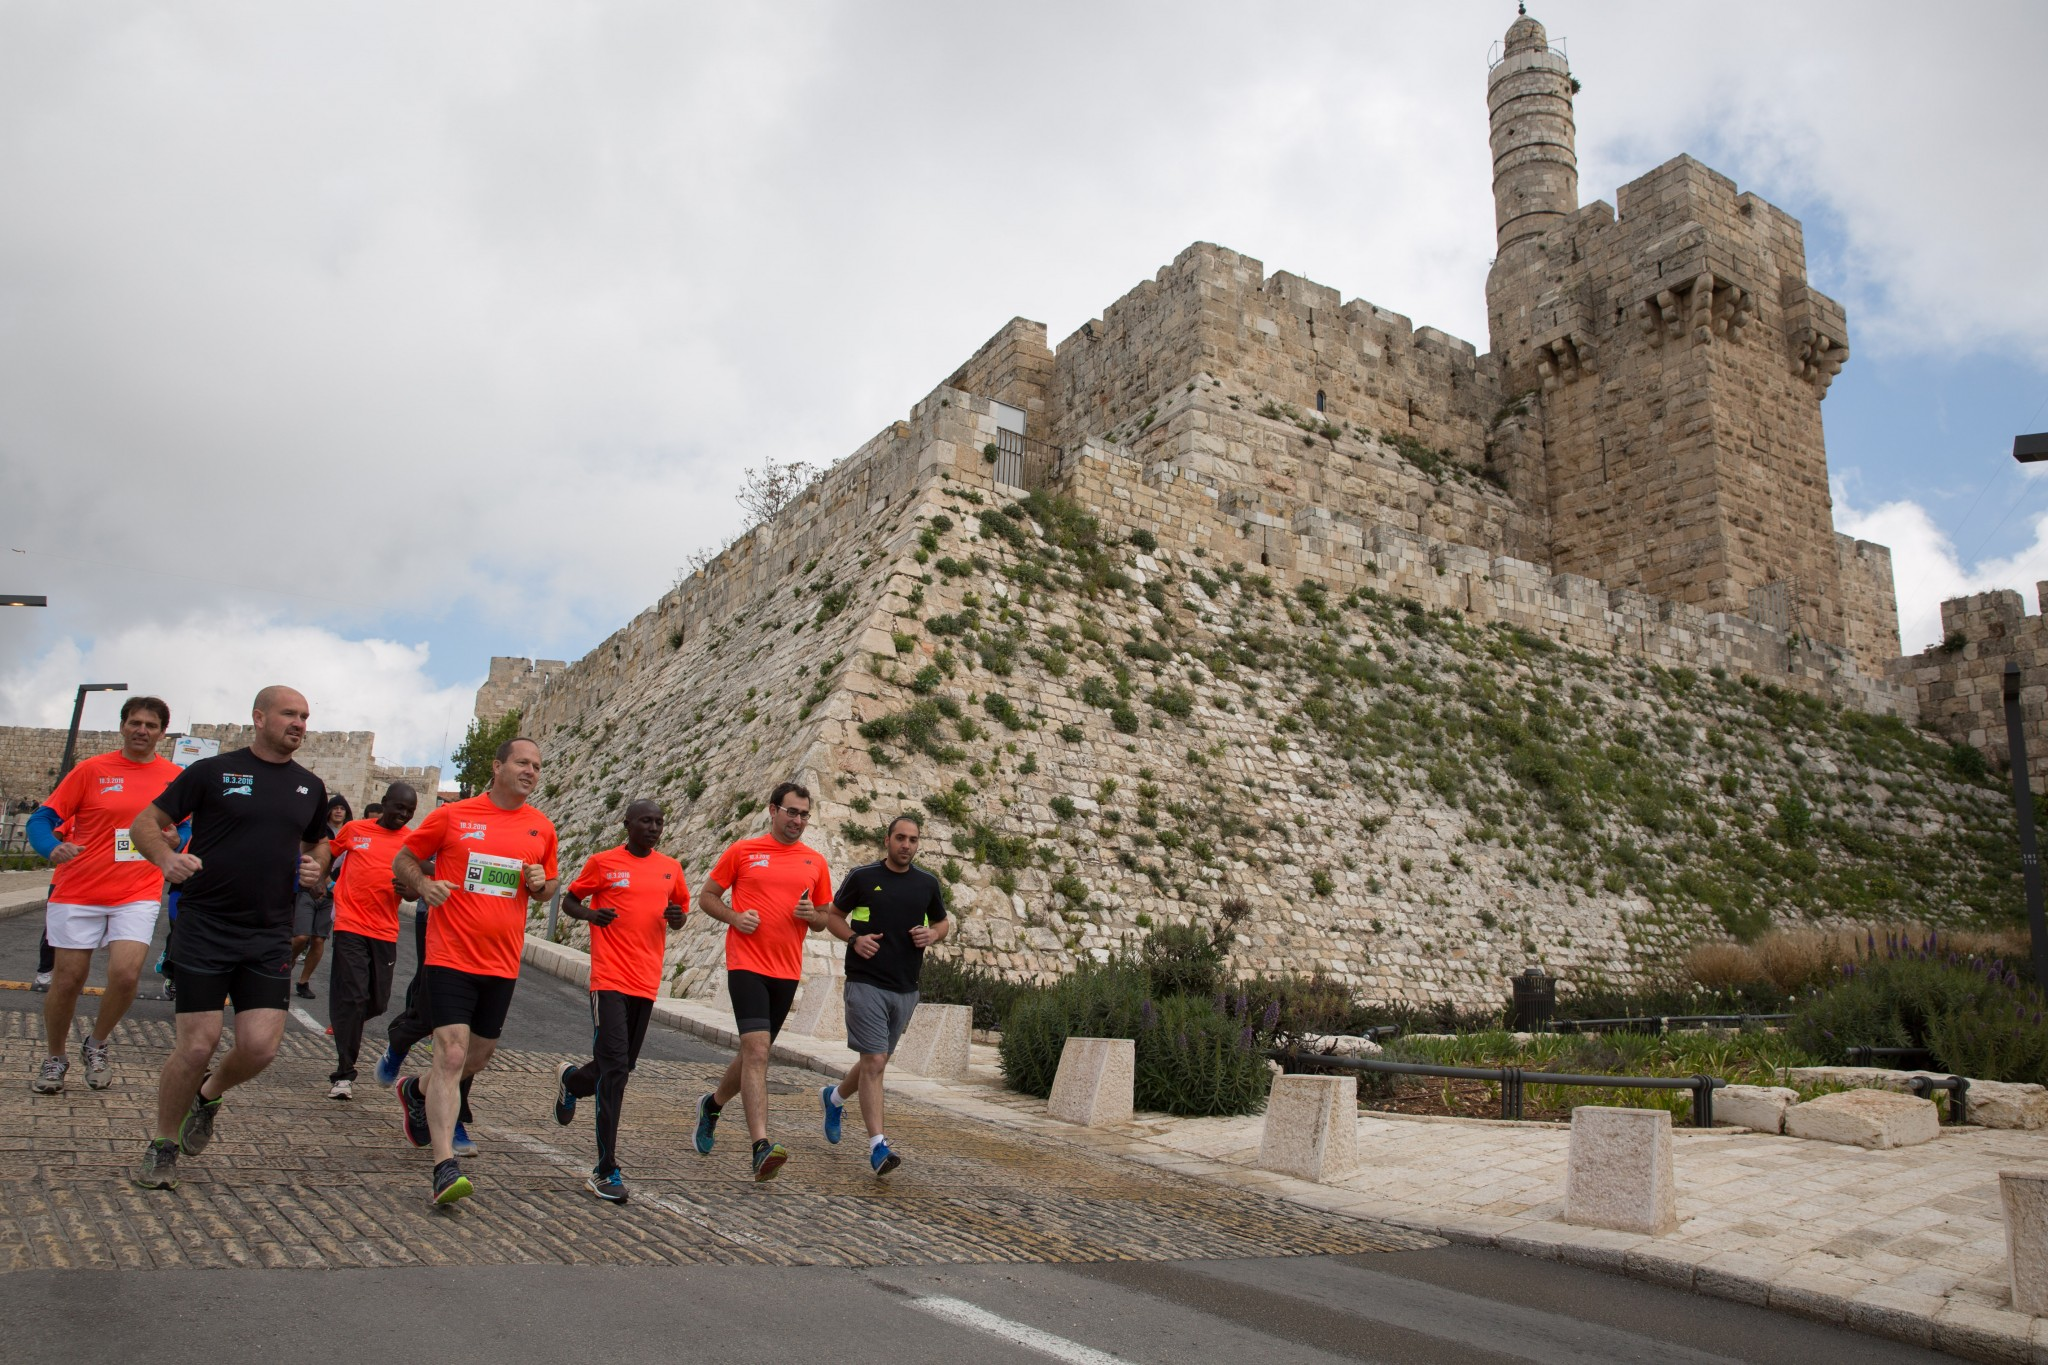 Running the streets of Jerusalem during the city's annual marathon. Photo via Flash 90